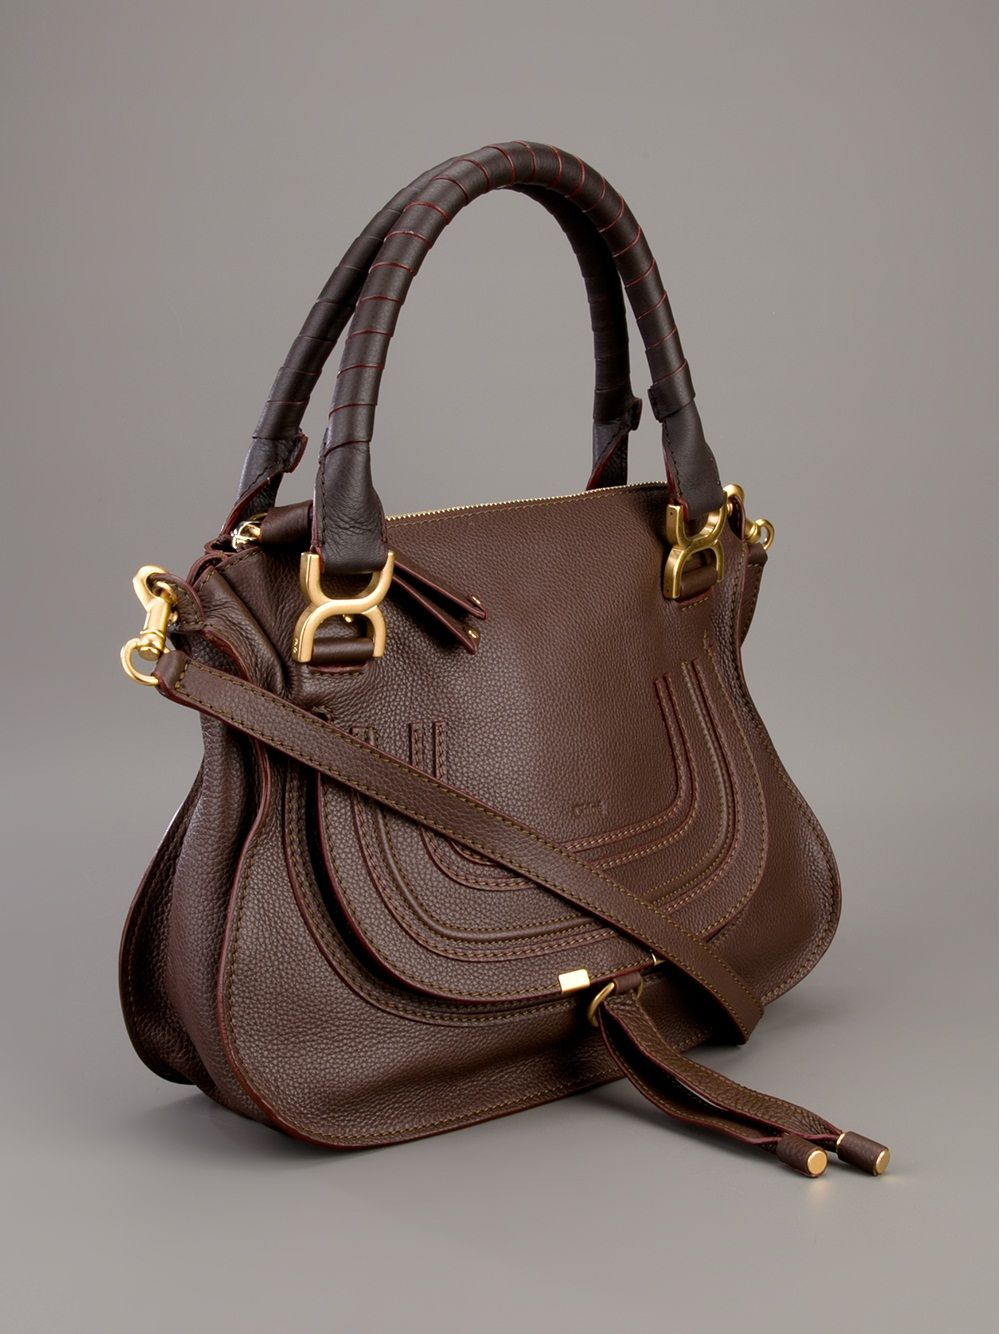 31116c5964 Chloé, Marcie small satchel, dark brown | handbags | Chloe marcie ...